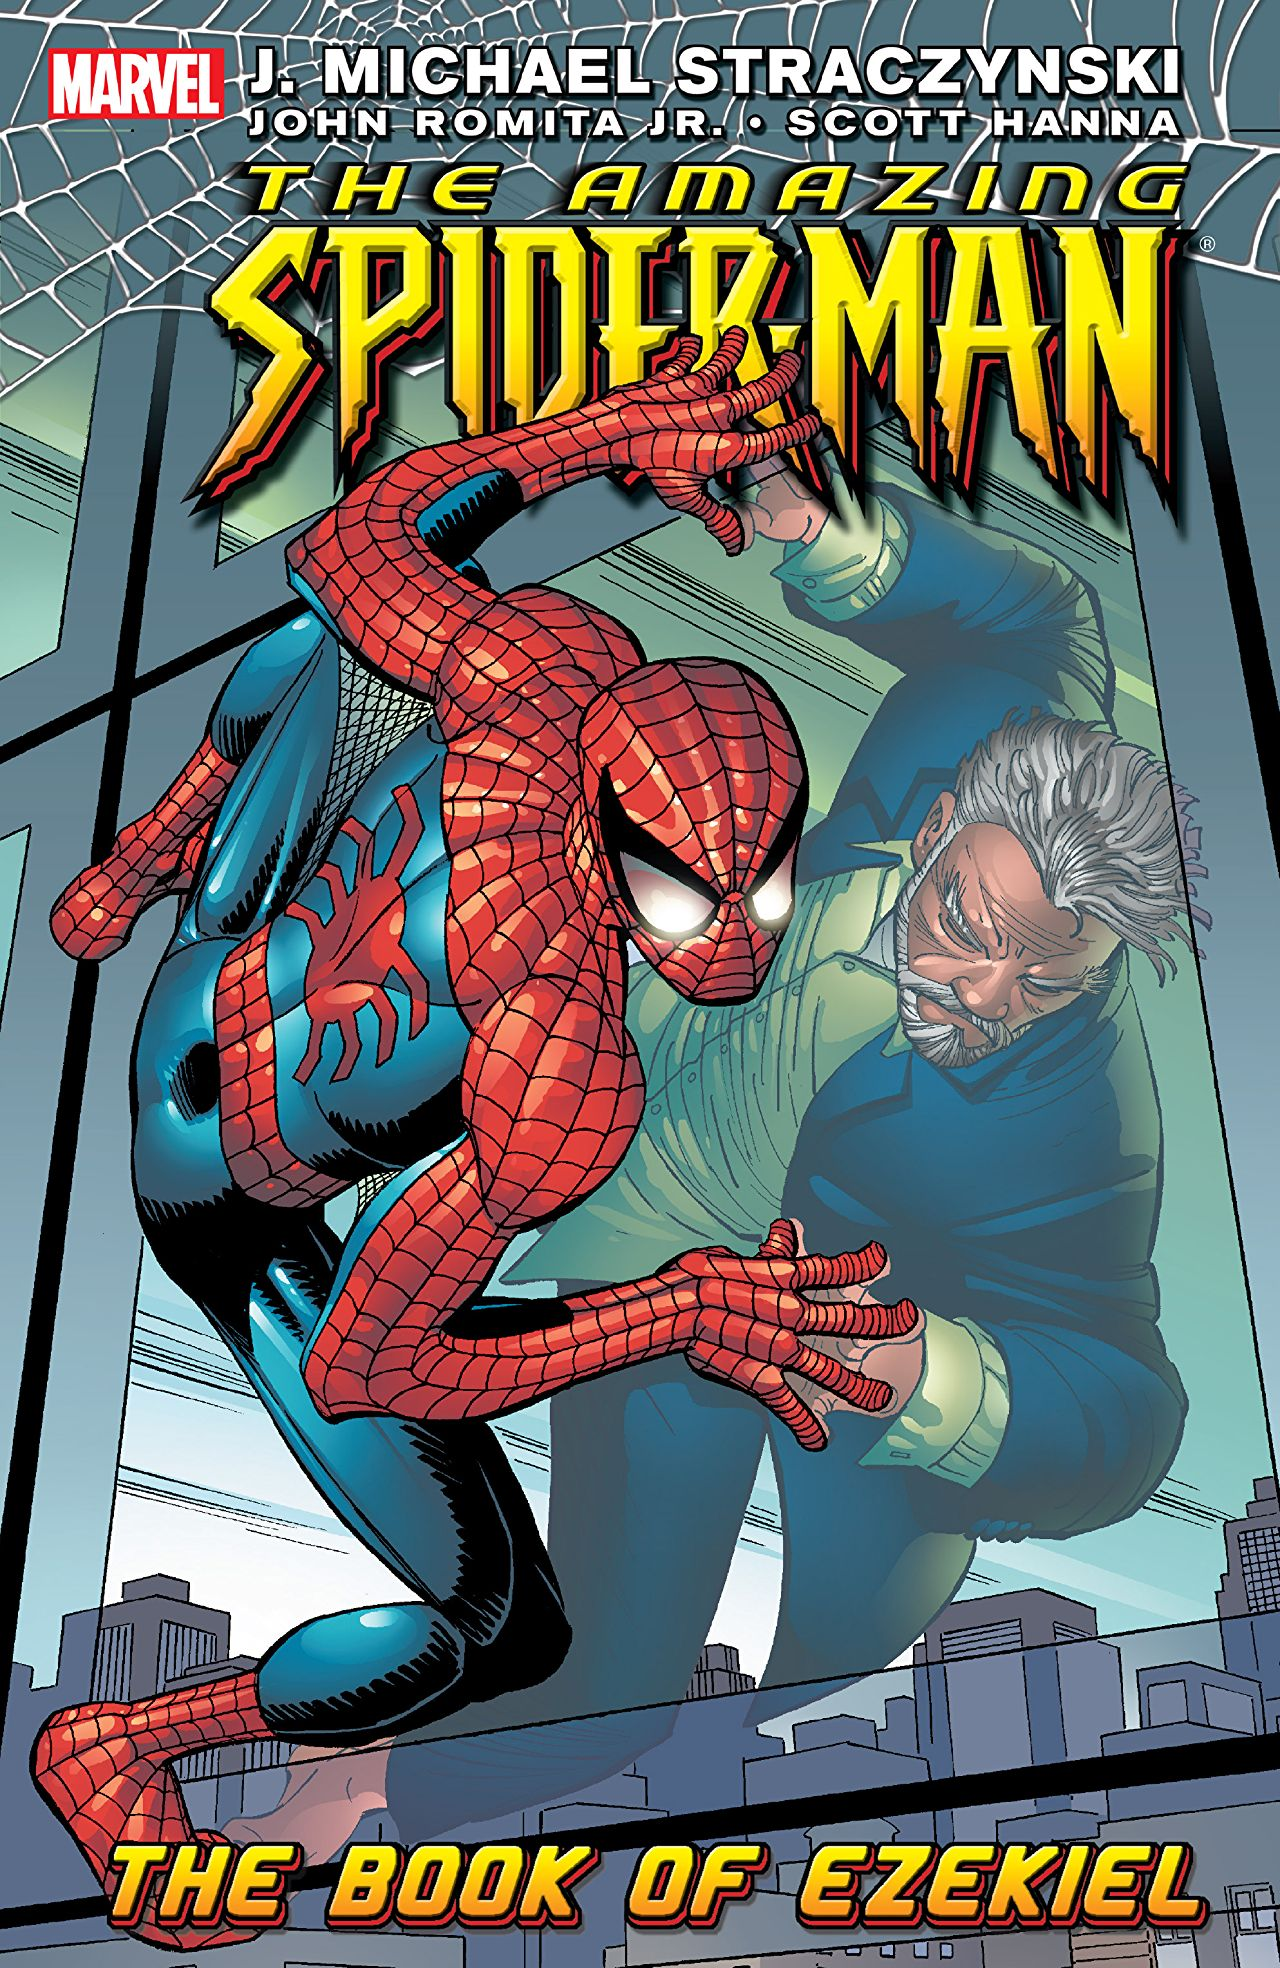 Amazing Spider-Man TPB Vol 1 7: The Book of Ezekiel